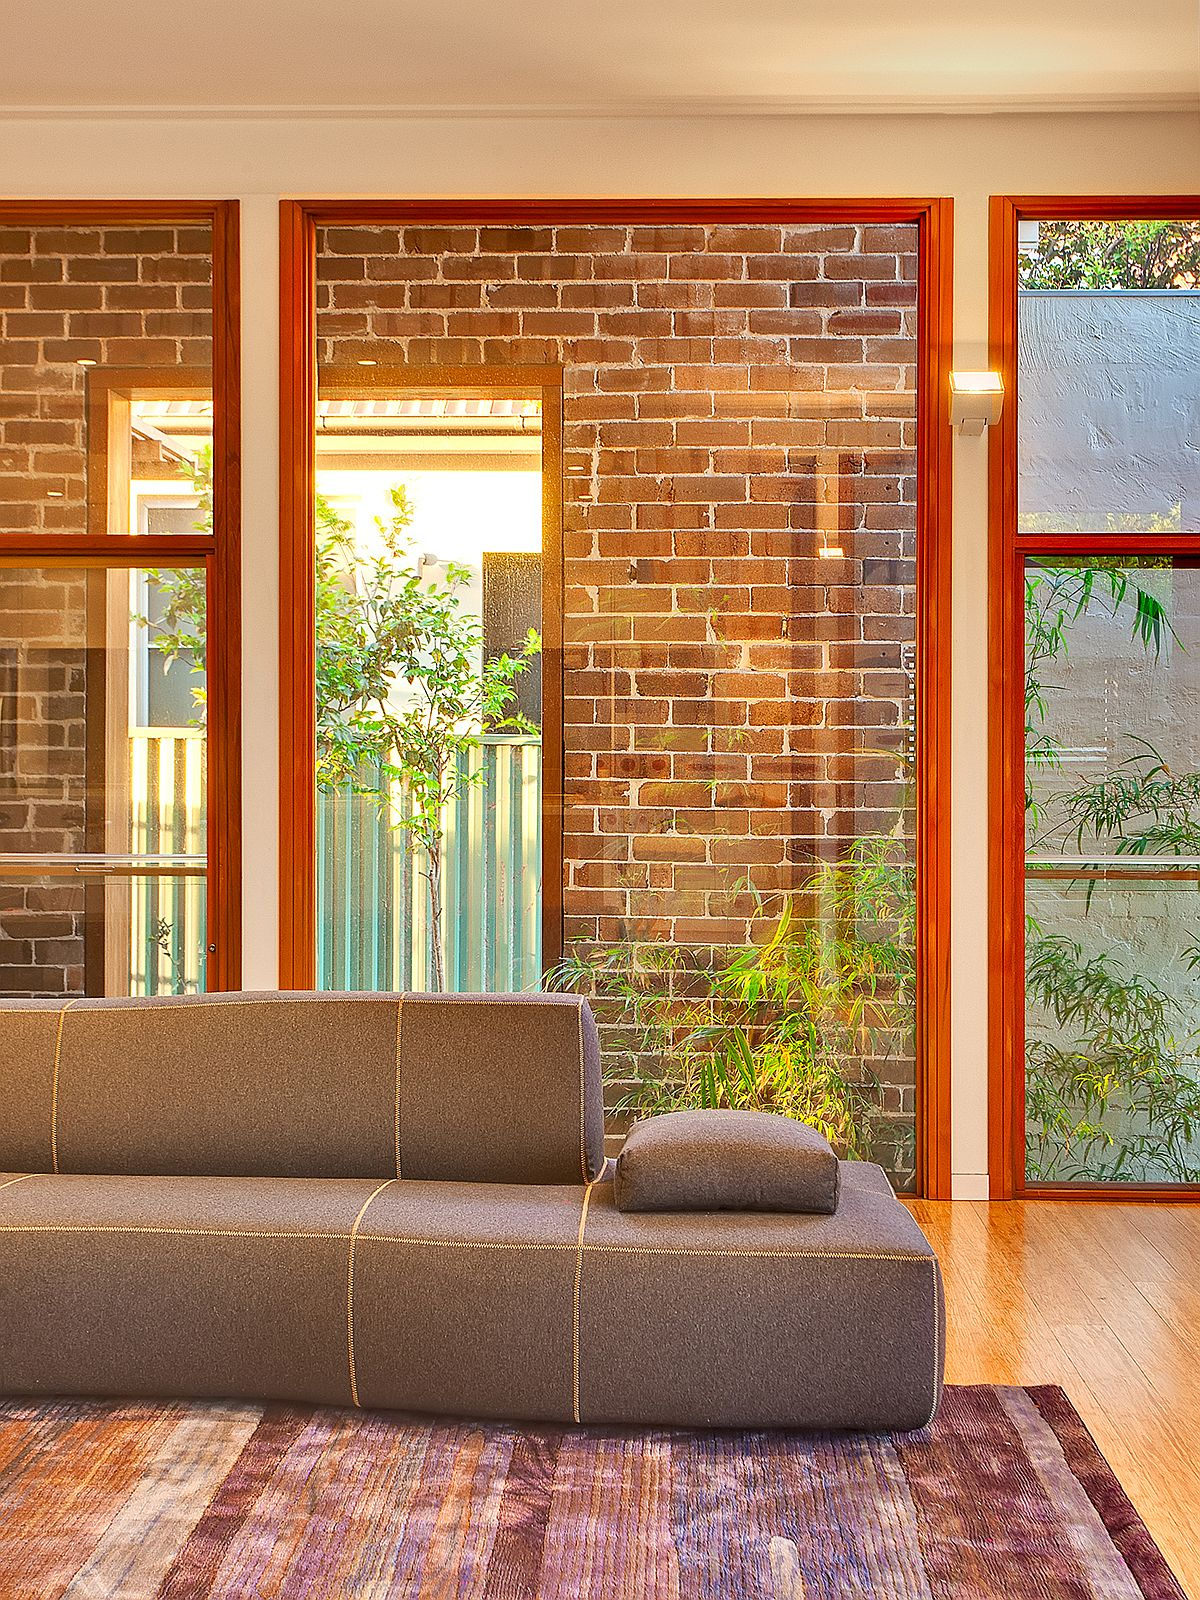 Lounge-of-Cape-Fear-House-in-Sydney-wih-brick-and-glass-wall-backdrop-21619